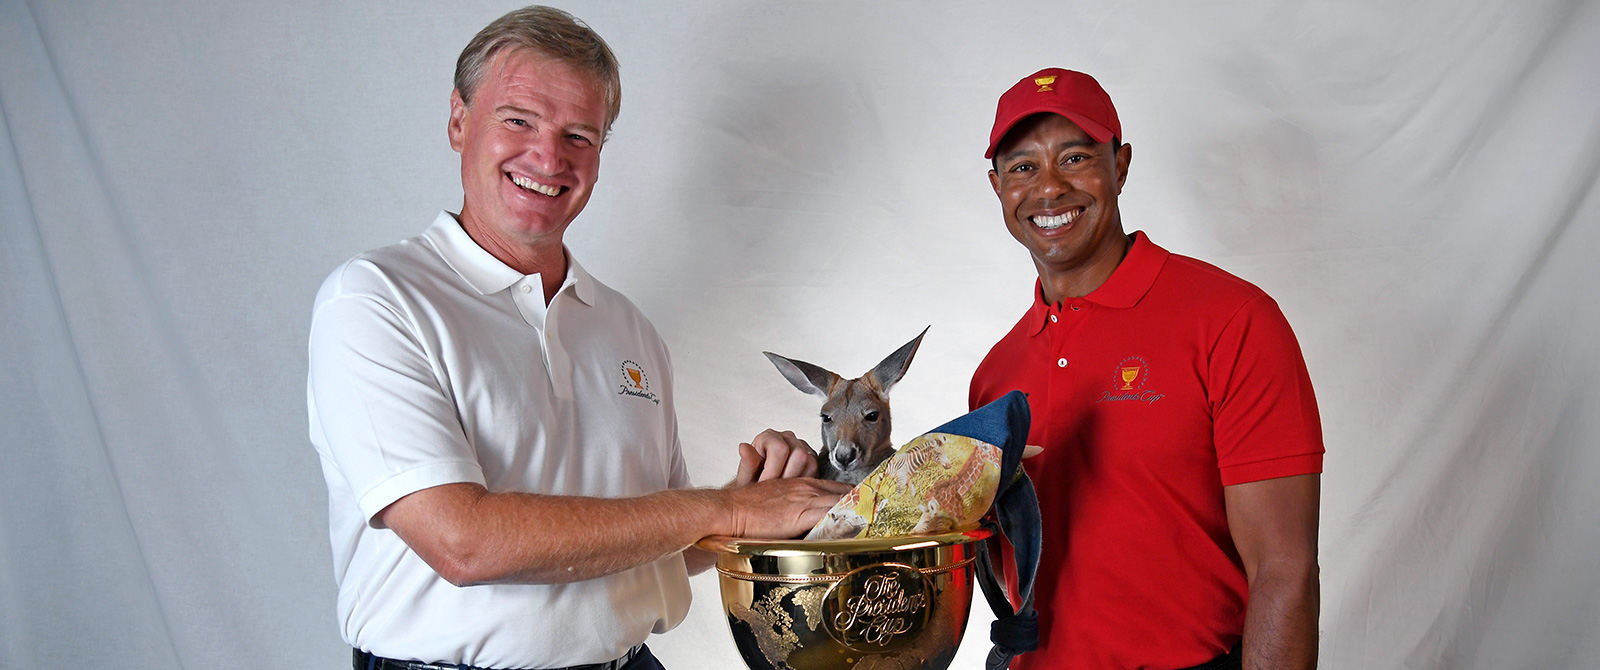 2019 Presidents Cup Official Travel Packages - Team Captains Ernie Els (International Team) and Tiger Woods (US Team)